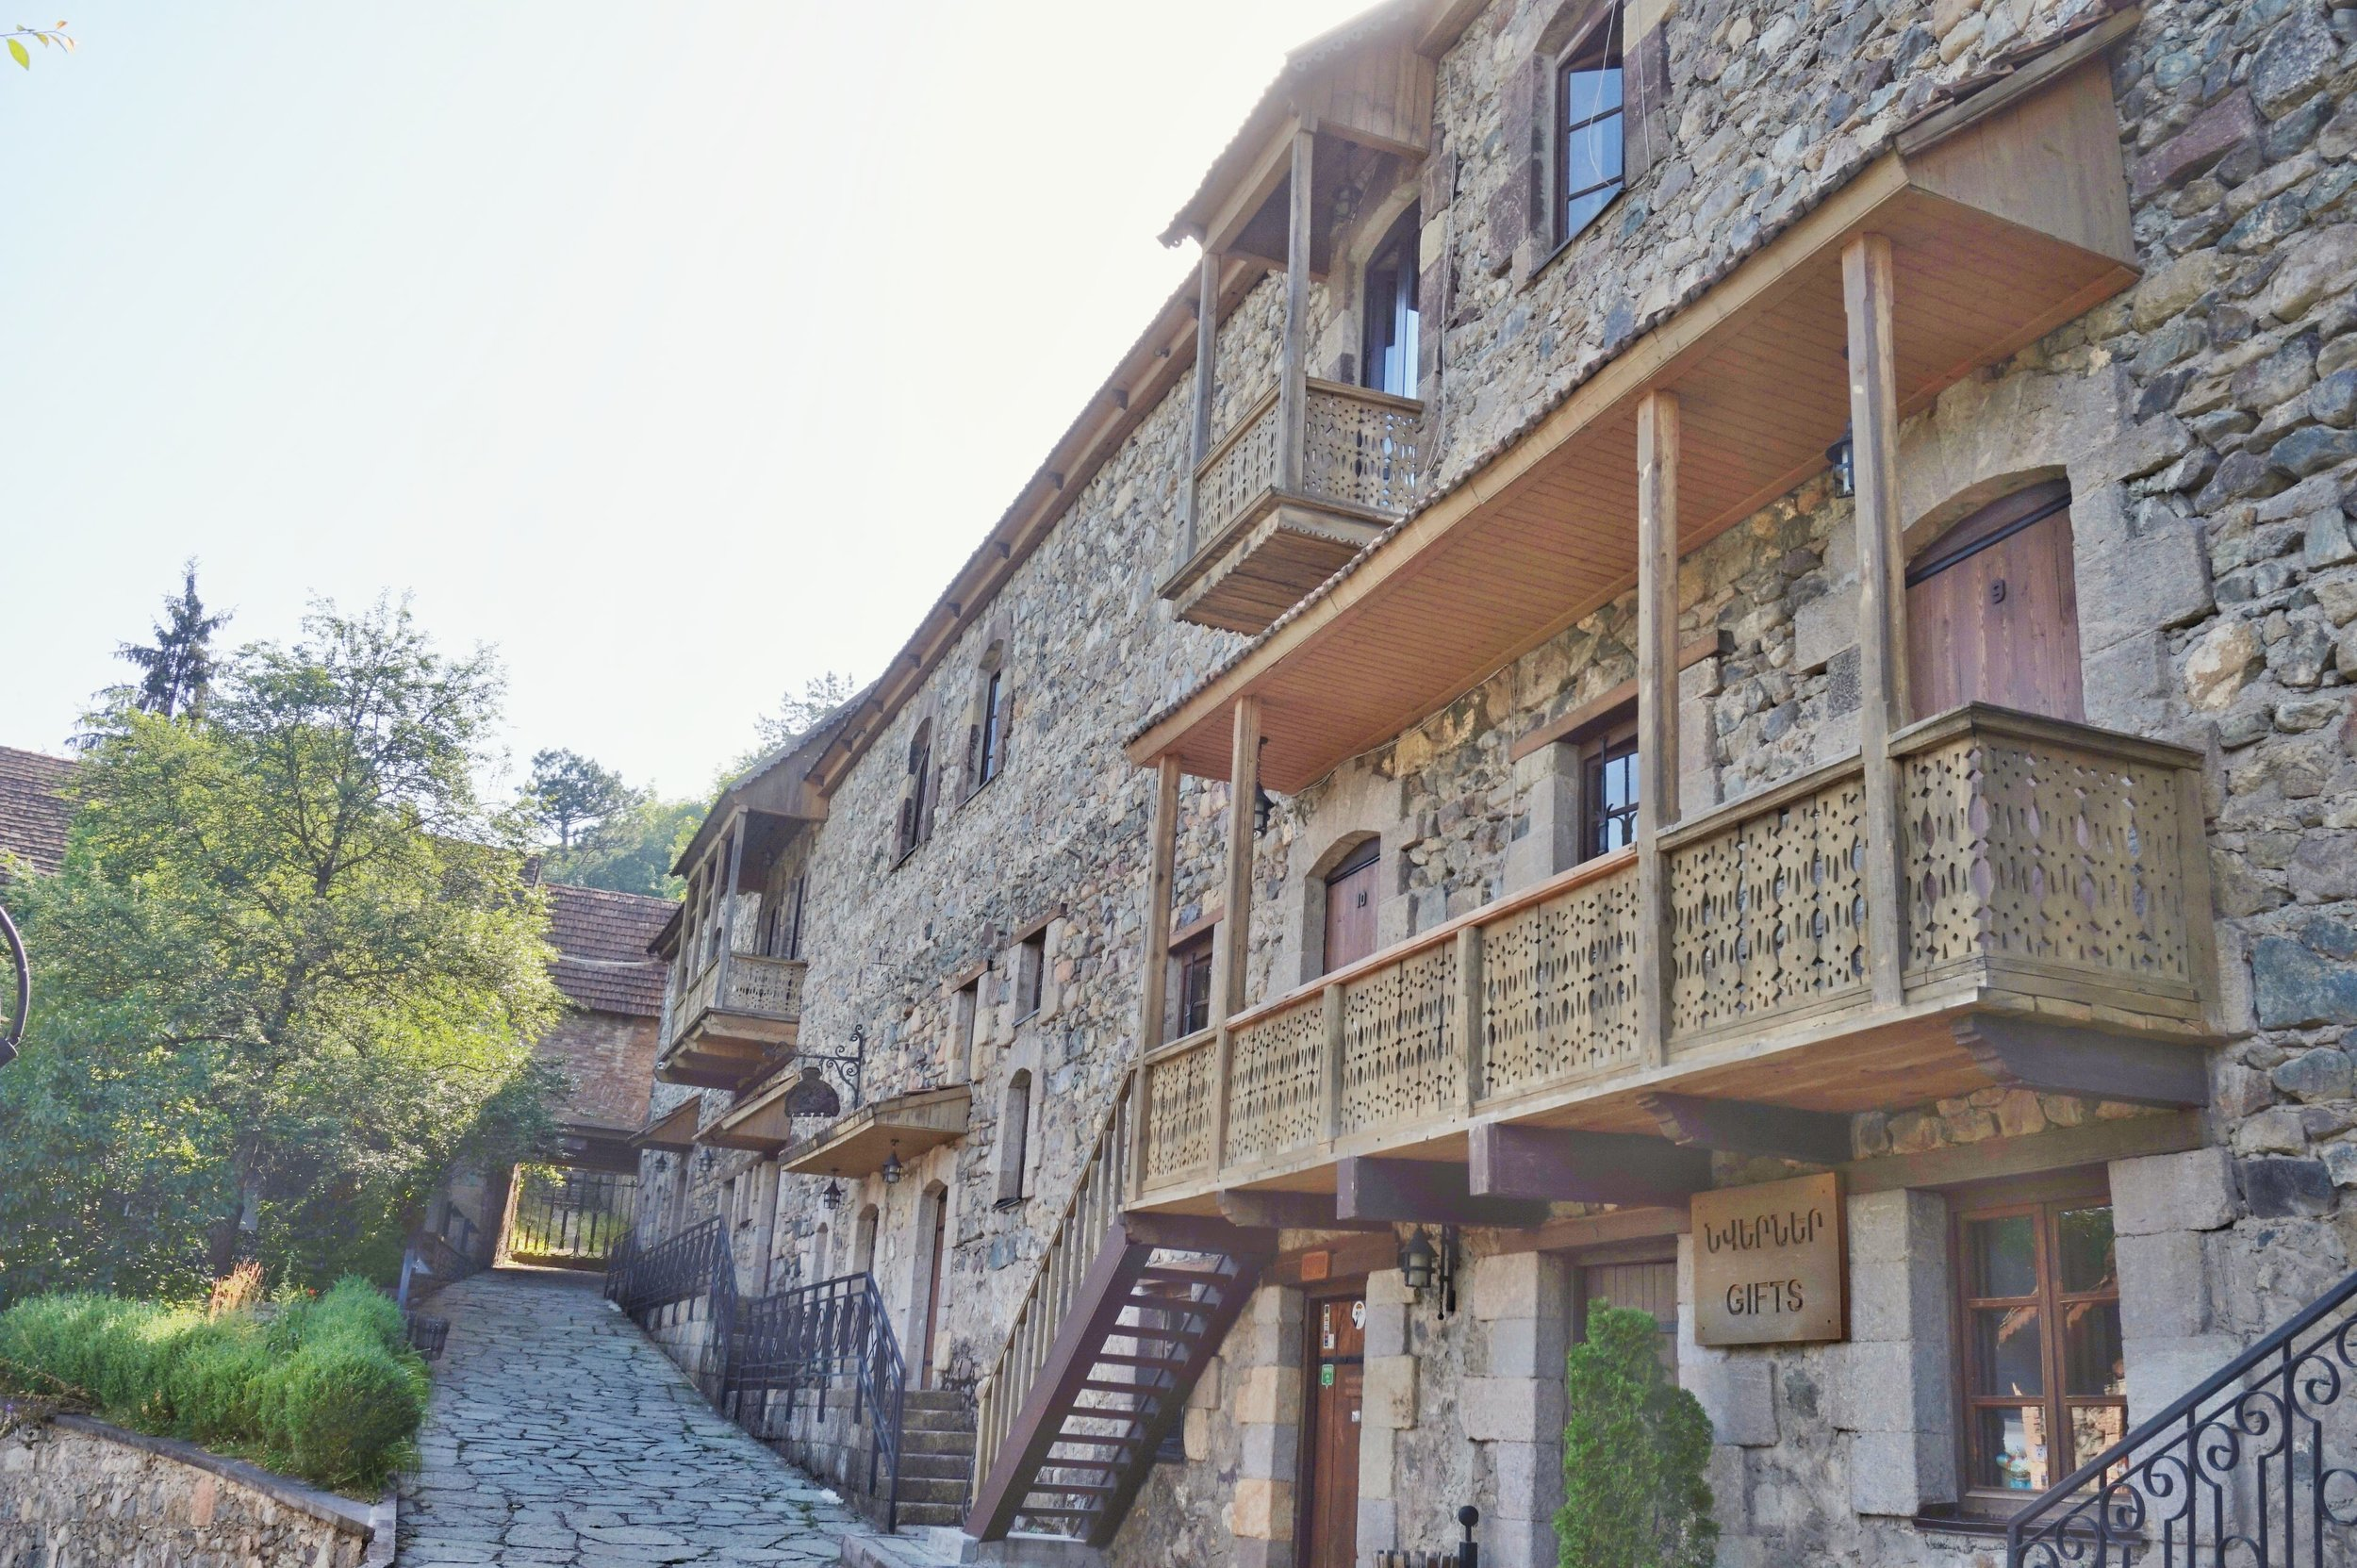 Dilijan can be a stop on your way to Georgia. The old town of Dilijan is one of the best places to see in Armenia.